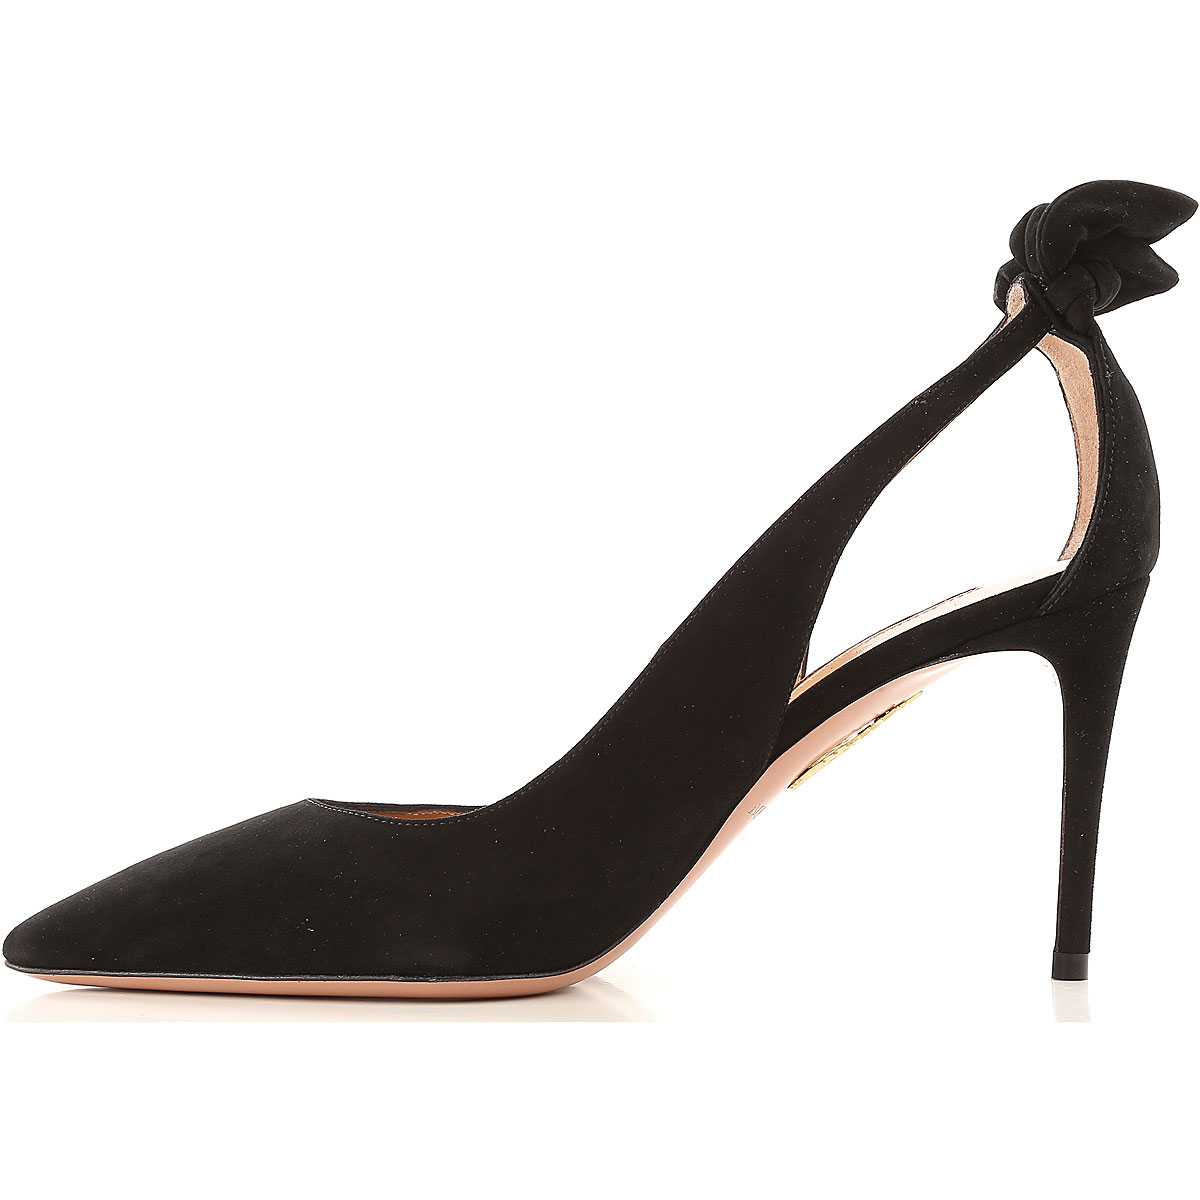 huge selection of 9286a 16ae6 Womens Shoes Aquazzura, Style code: denmidp0-sue-000